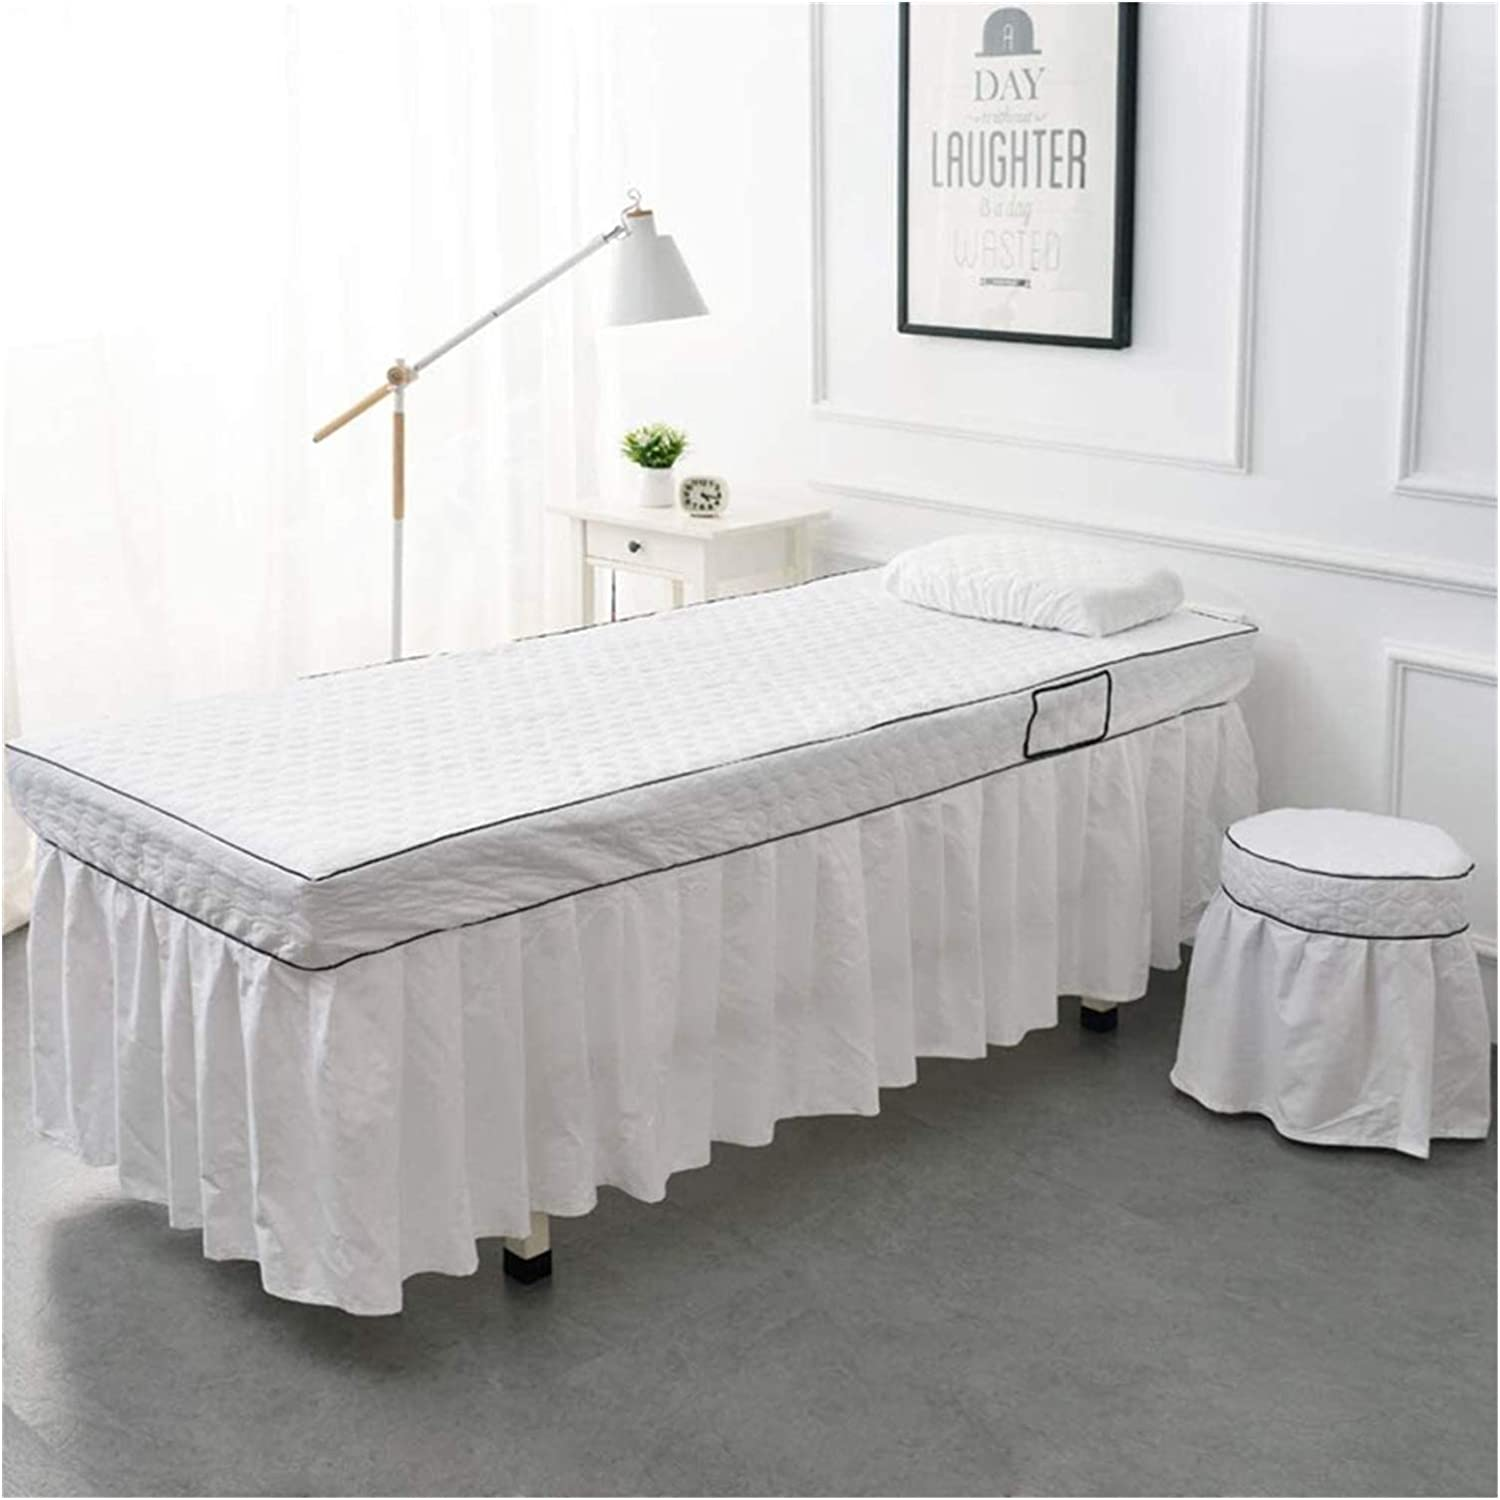 Beauty products Max 74% OFF Massage Table Sheet Set Solid Color Bed Cover Ski Simple Beauty